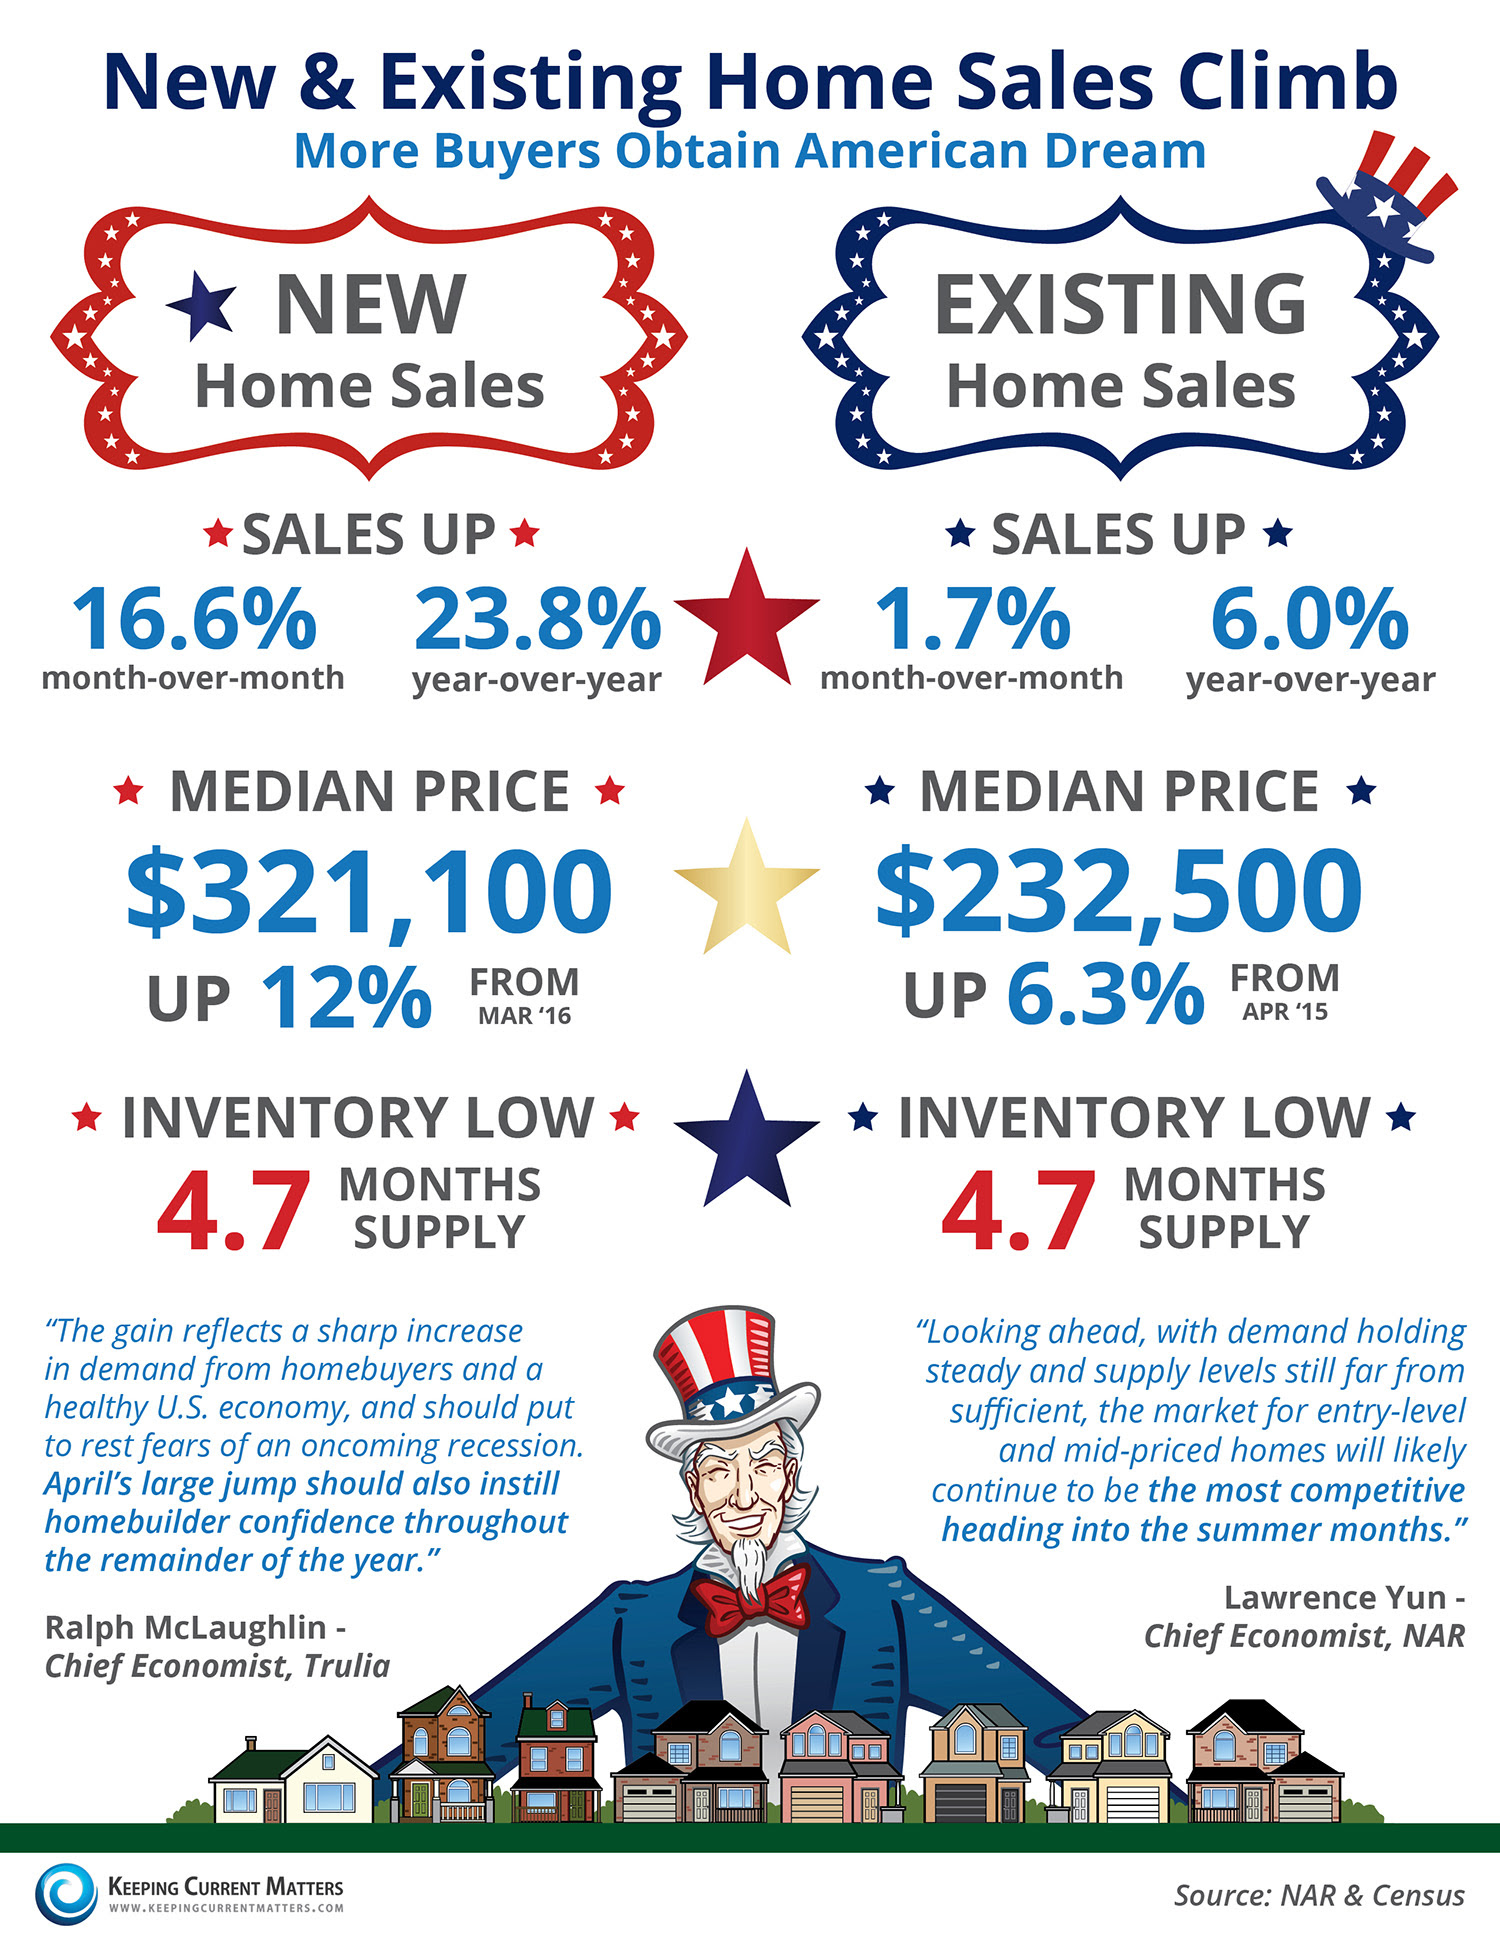 New & Existing Home Sales Climb [INFOGRAPHIC] | Keeping Current Matters